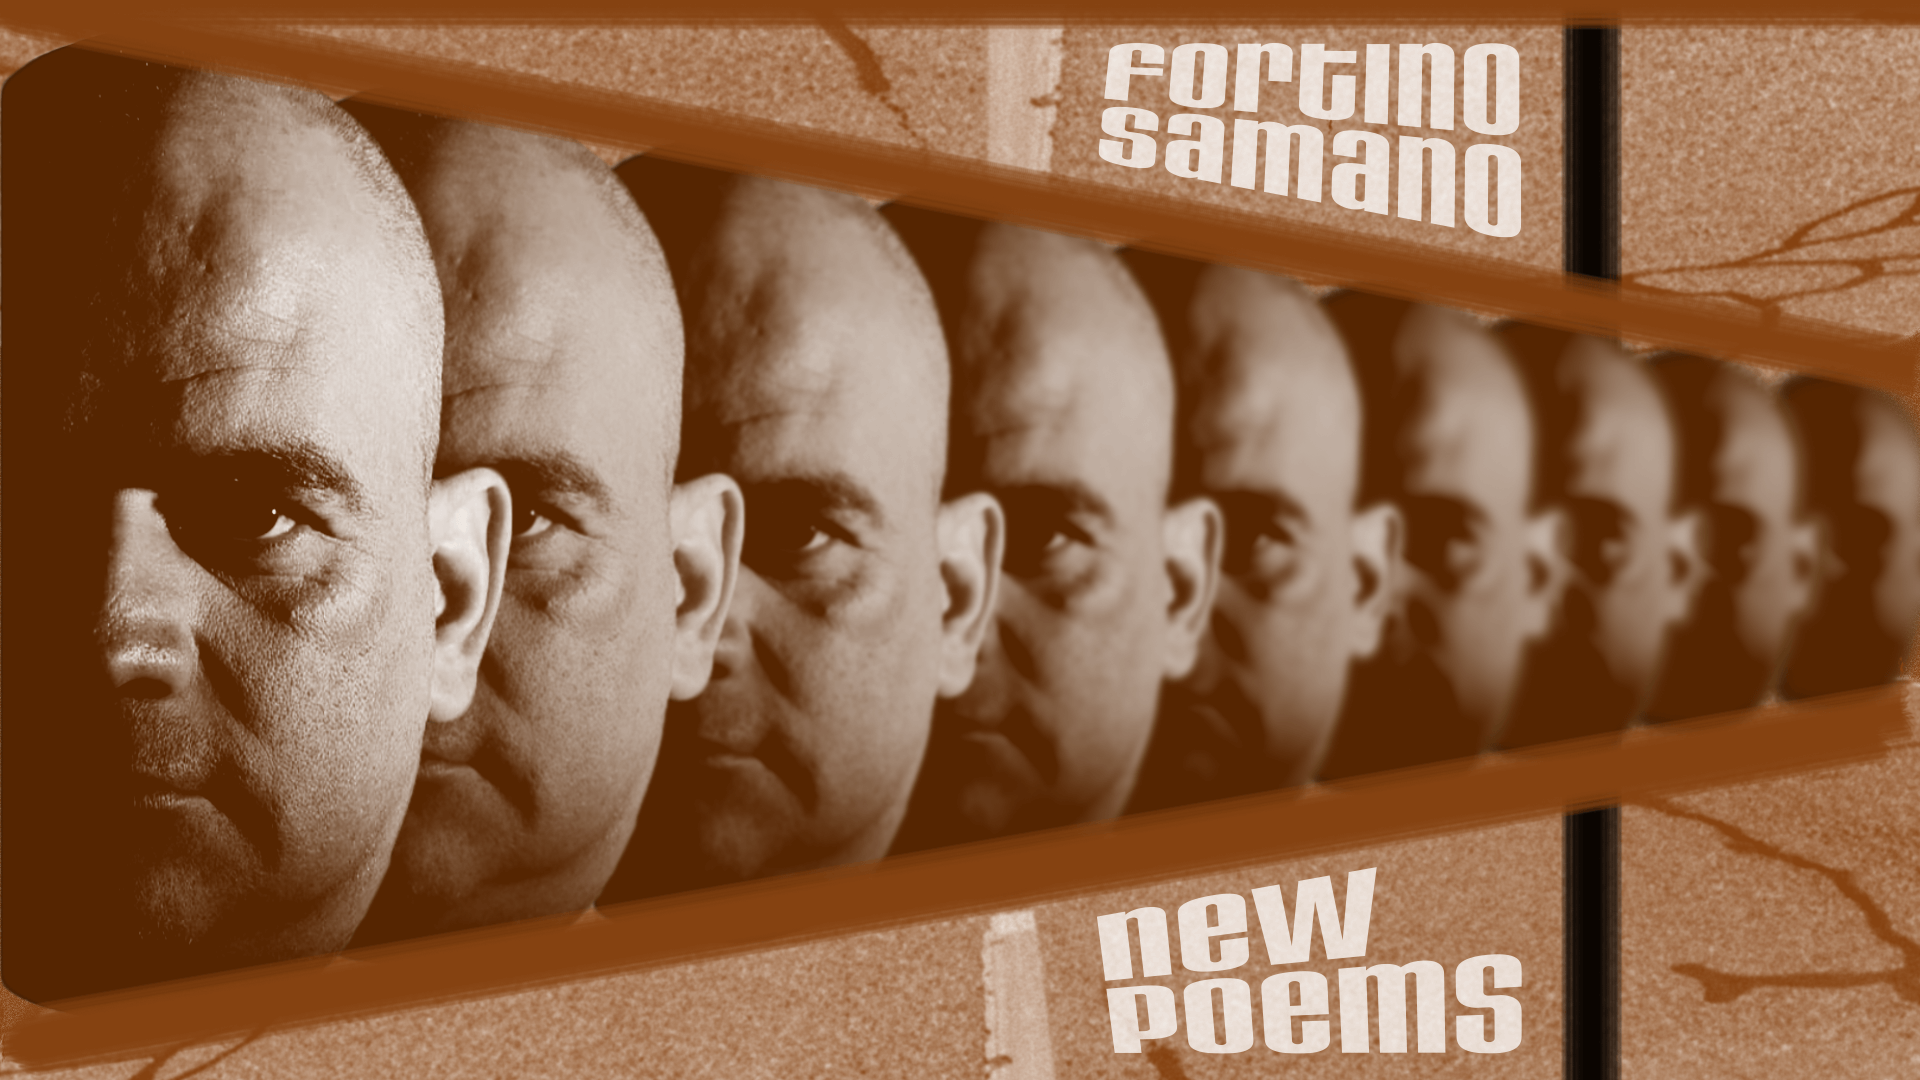 Fortino Samano New Poems.png